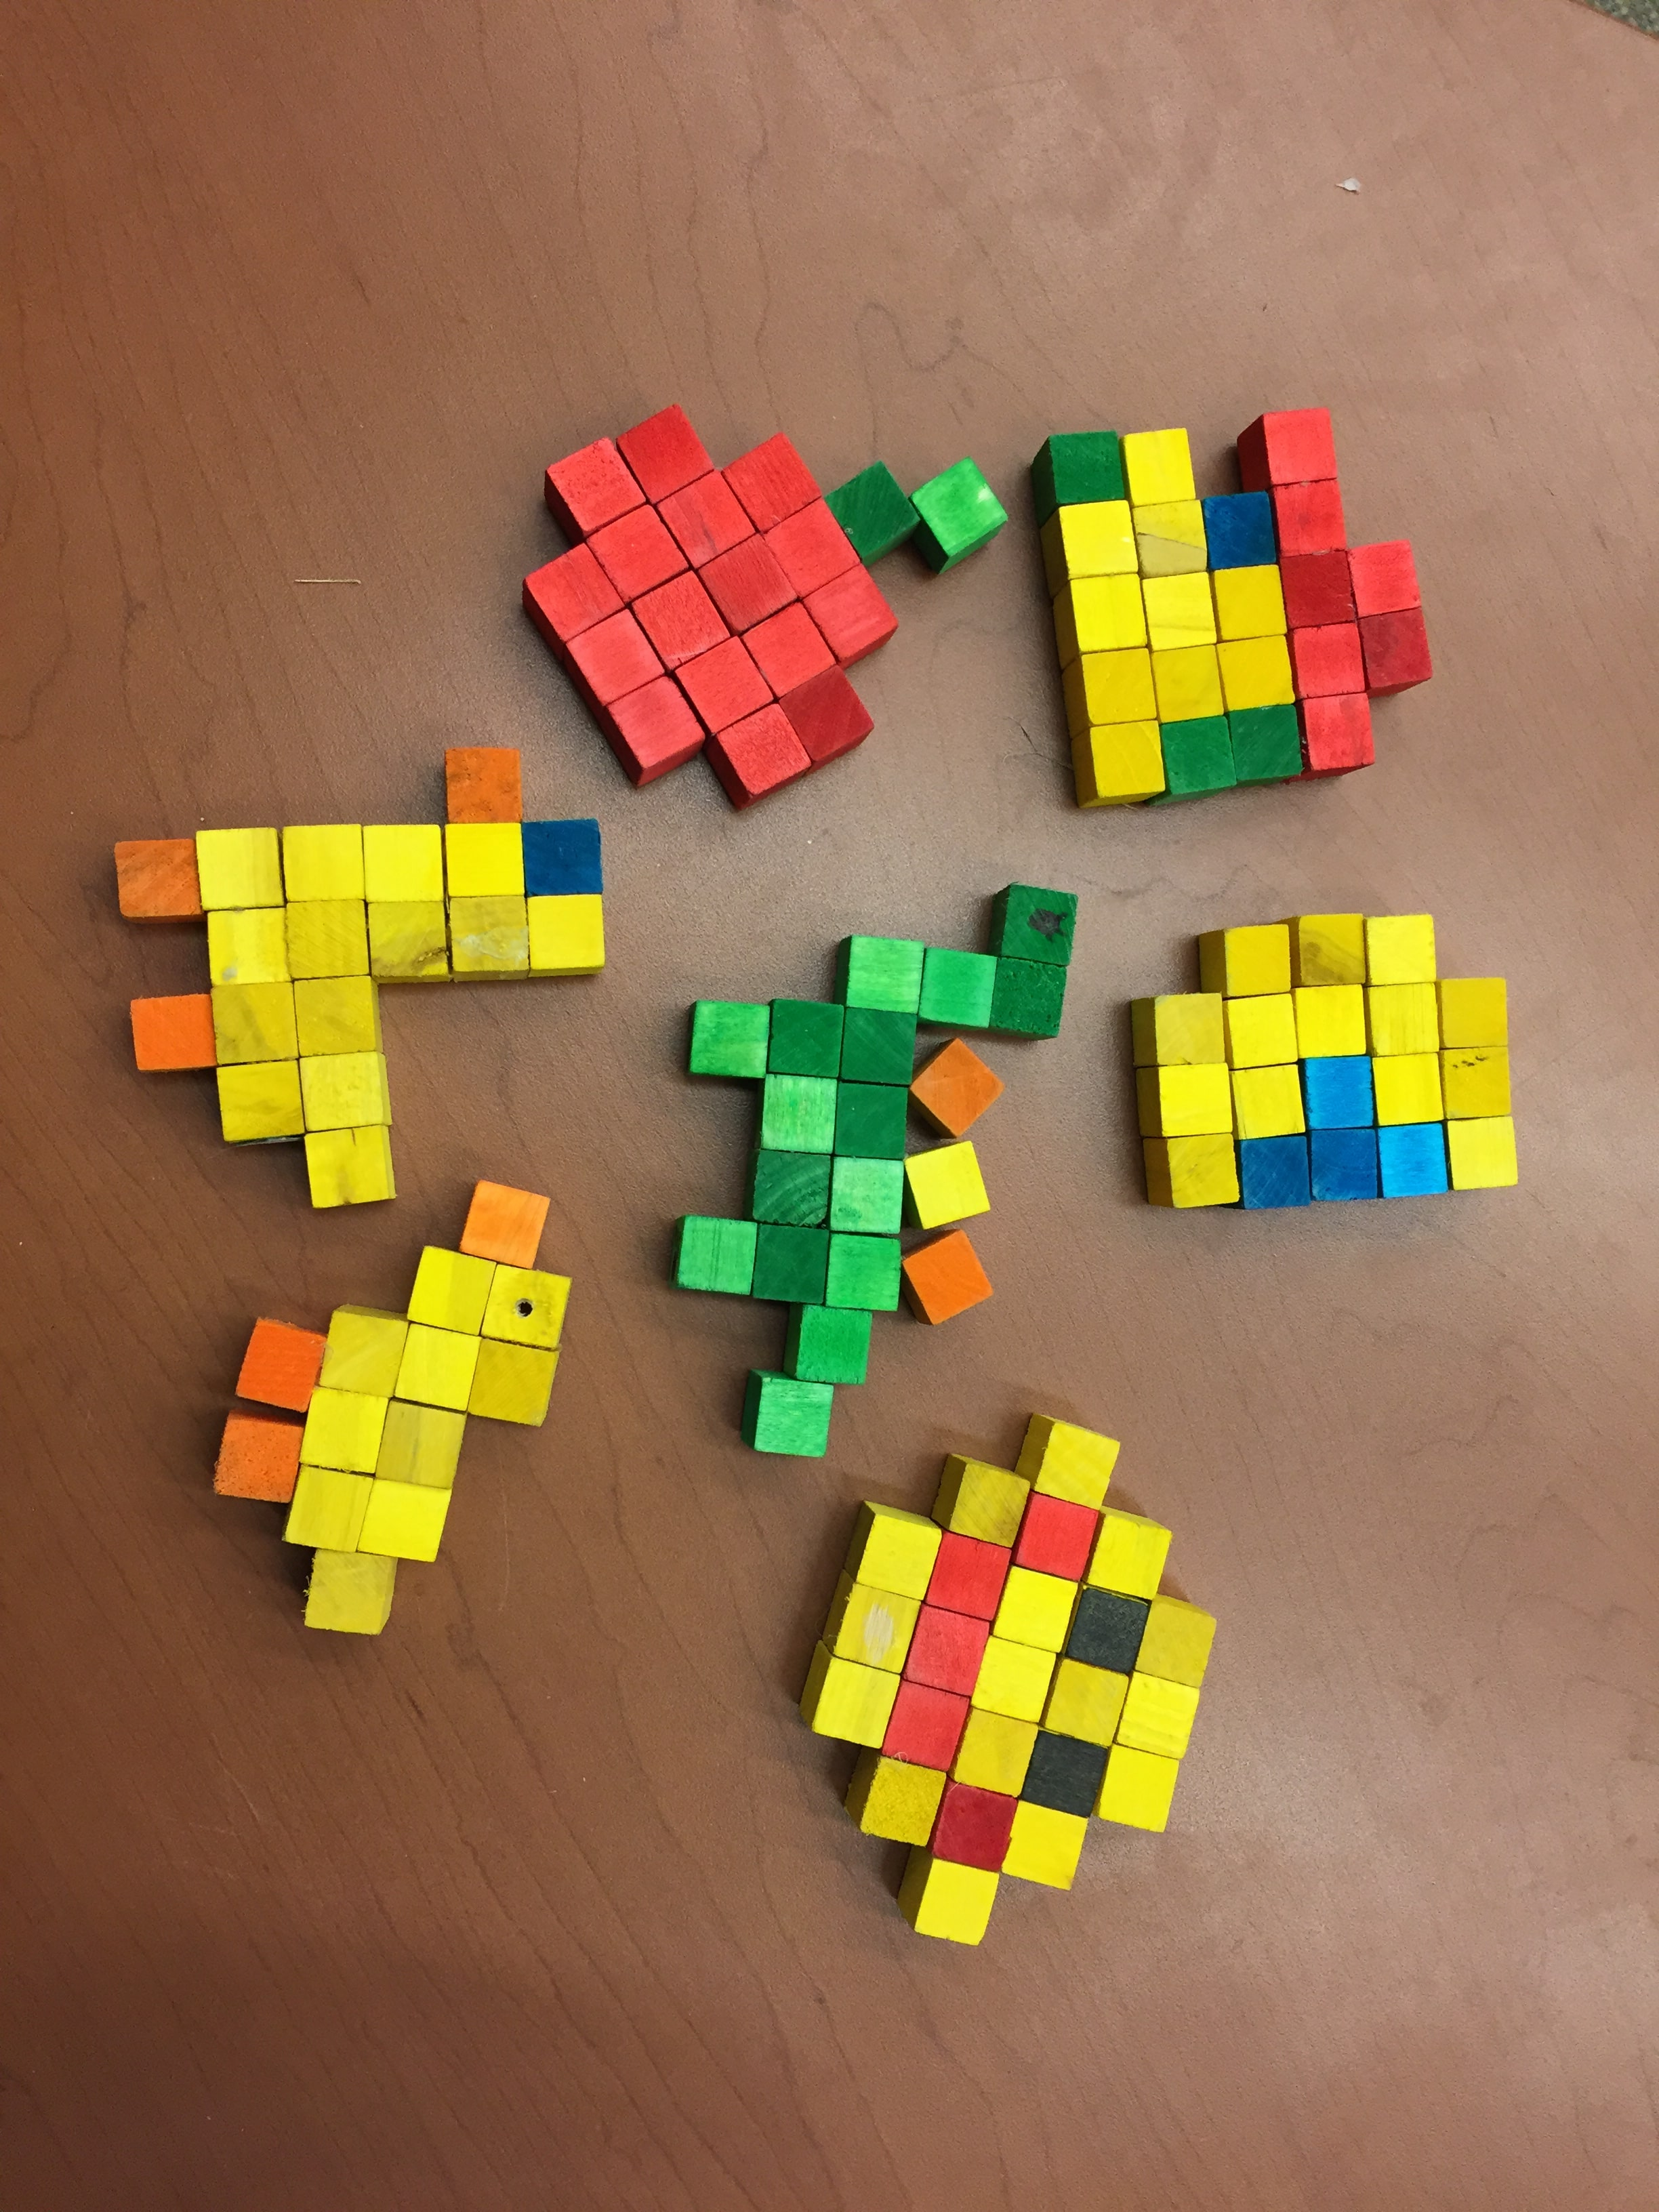 Colourful small blocks arranged to form animal shapes on table.